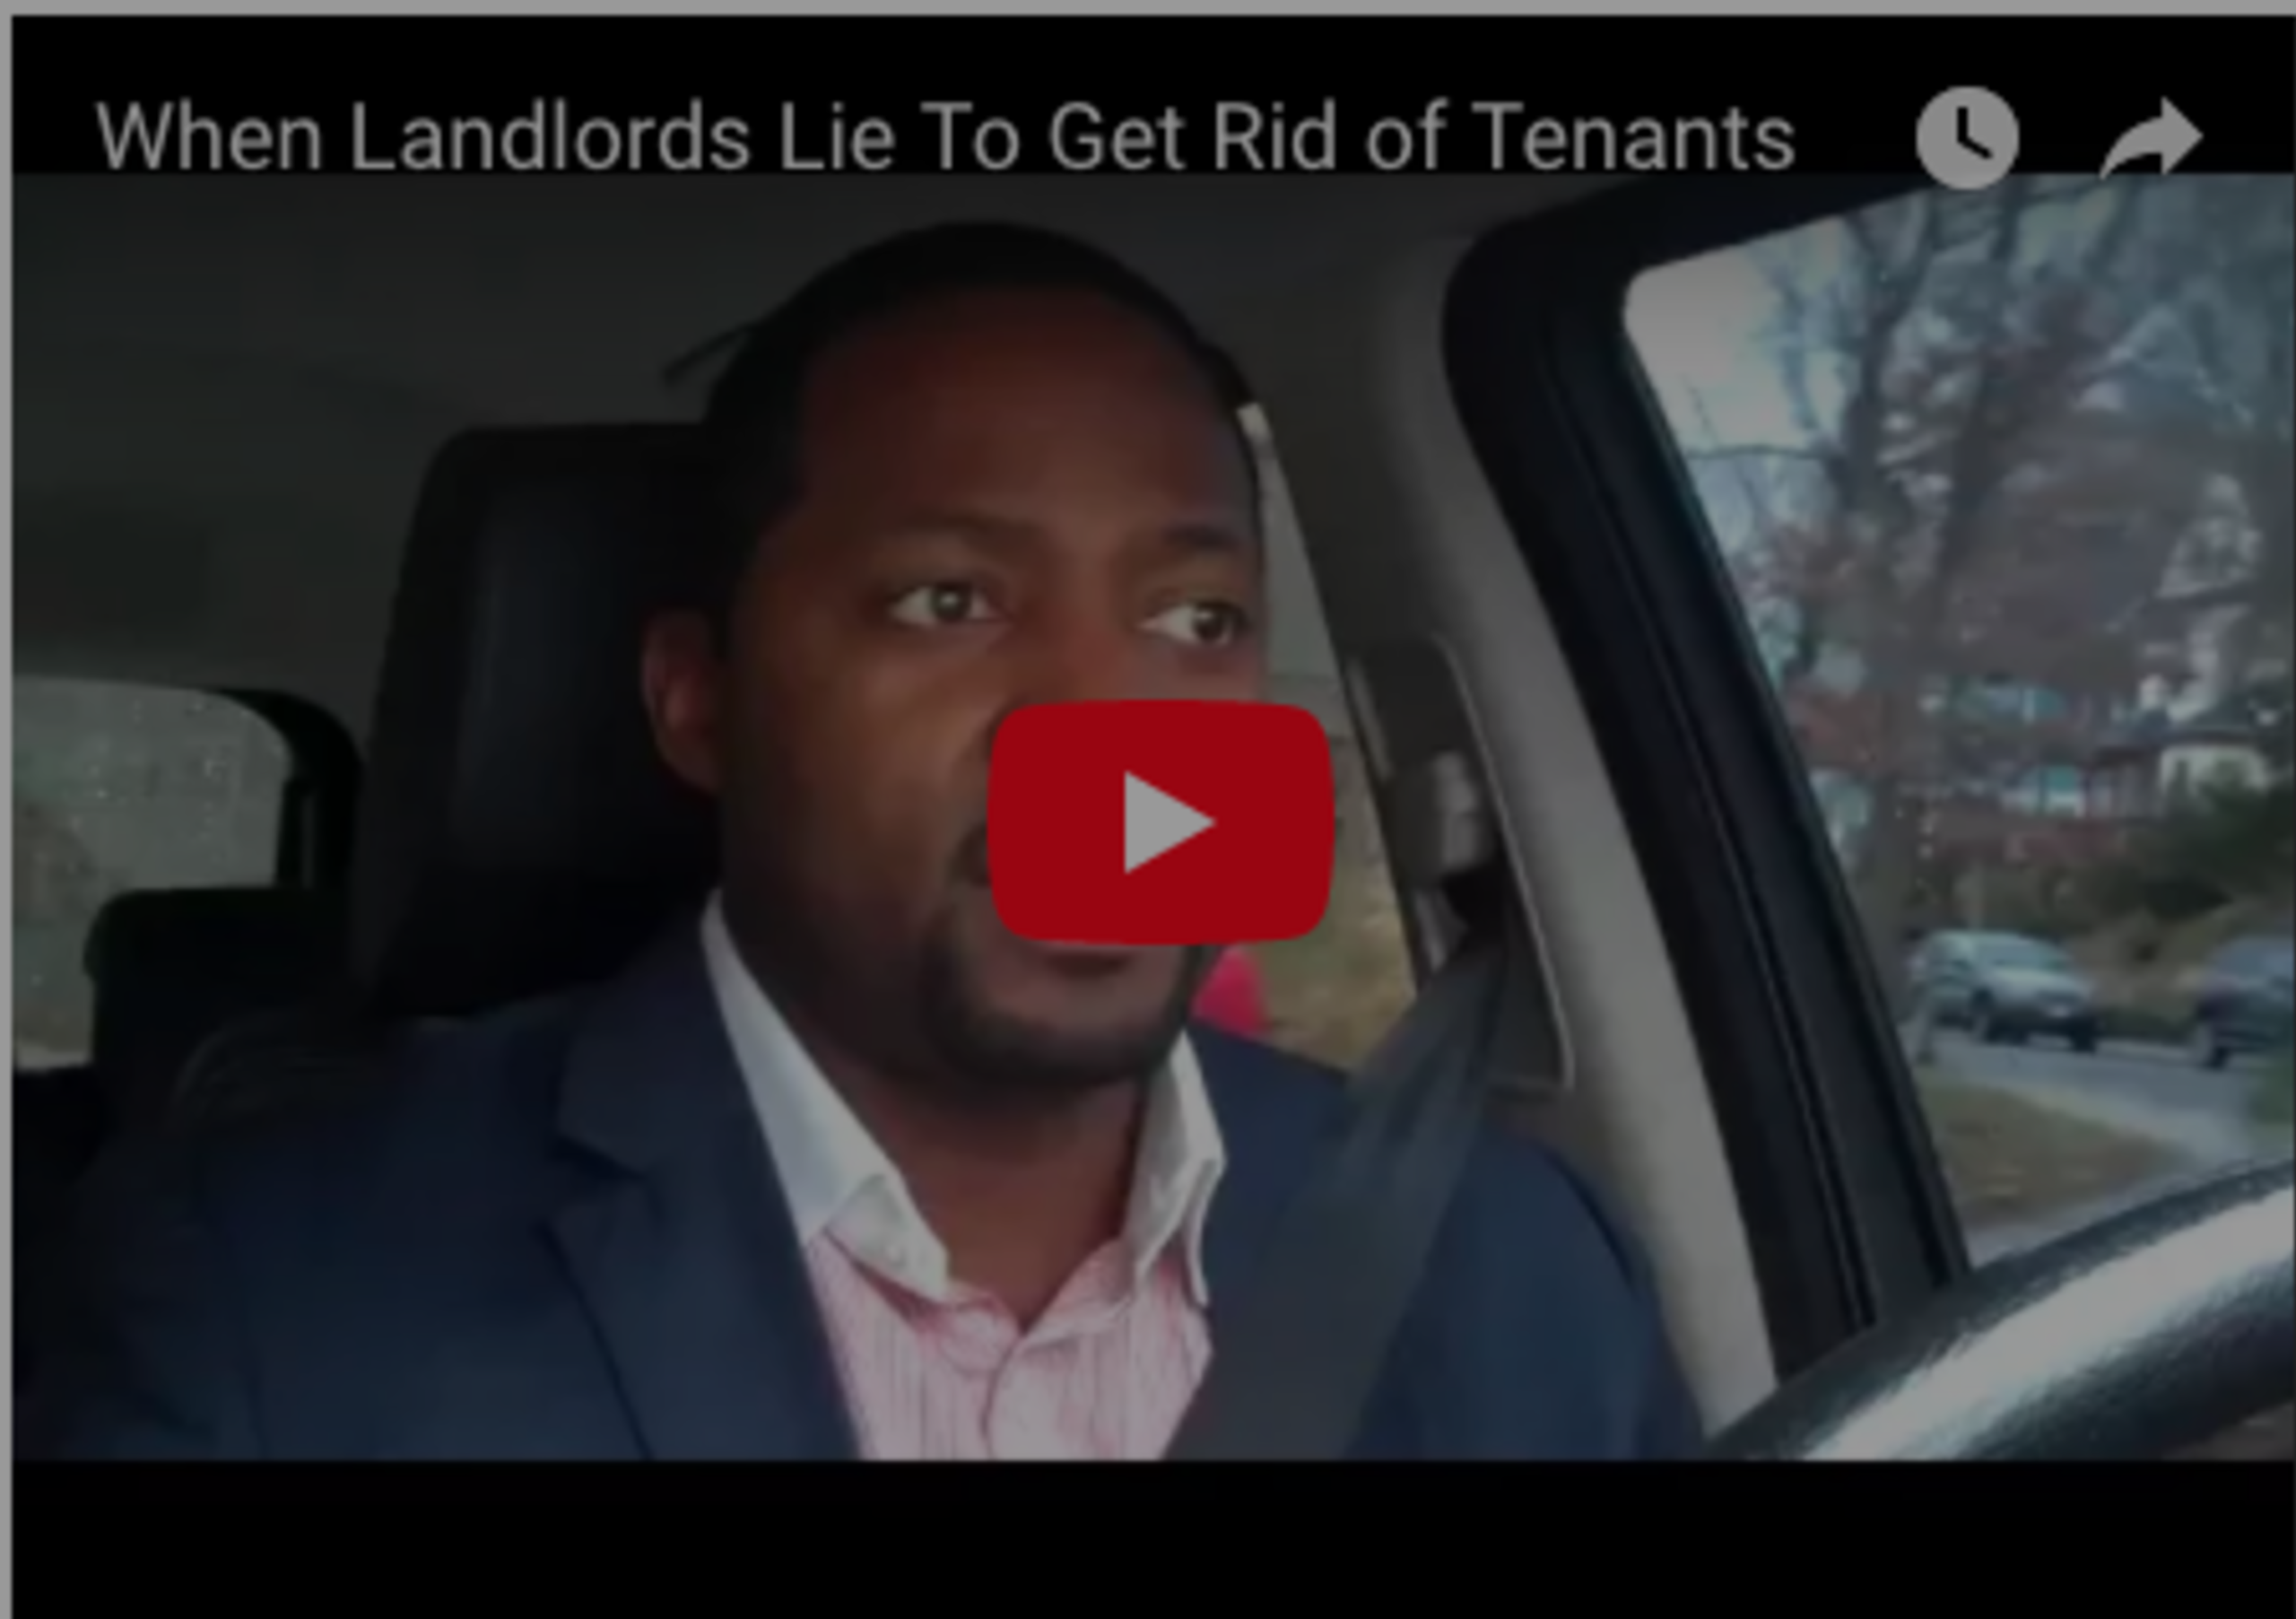 When Landlords Lie To Get Rid of Tenants